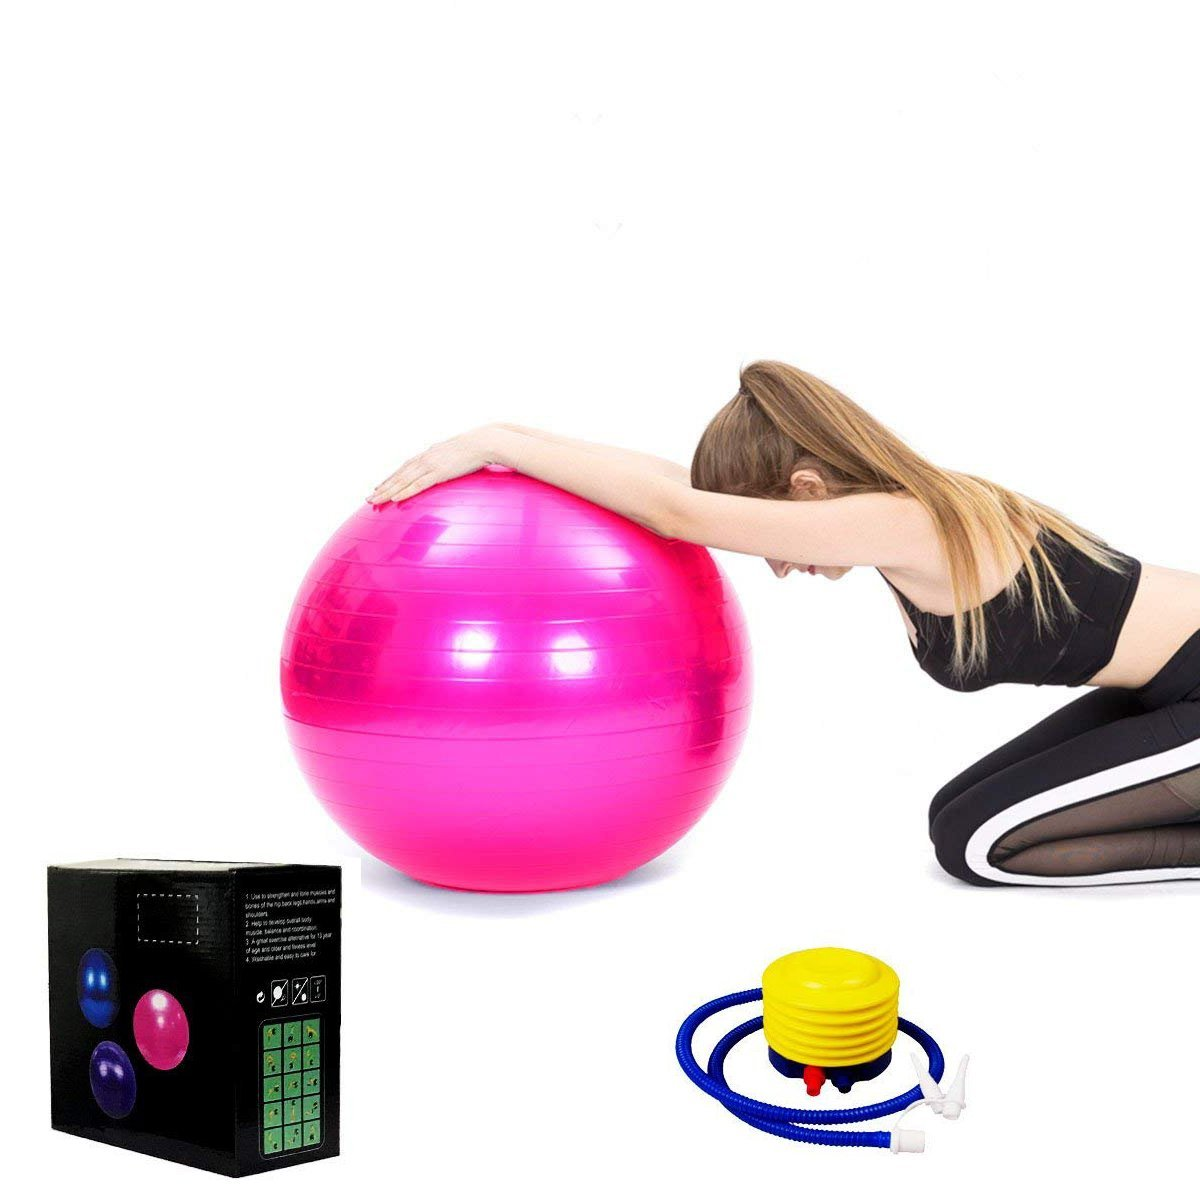 Exercise Ball for Fitness,Balance Ball for Yoga,Stability,Professional Grade Exercise Equipment-Supports 2200lbs-65cm Balance Balls